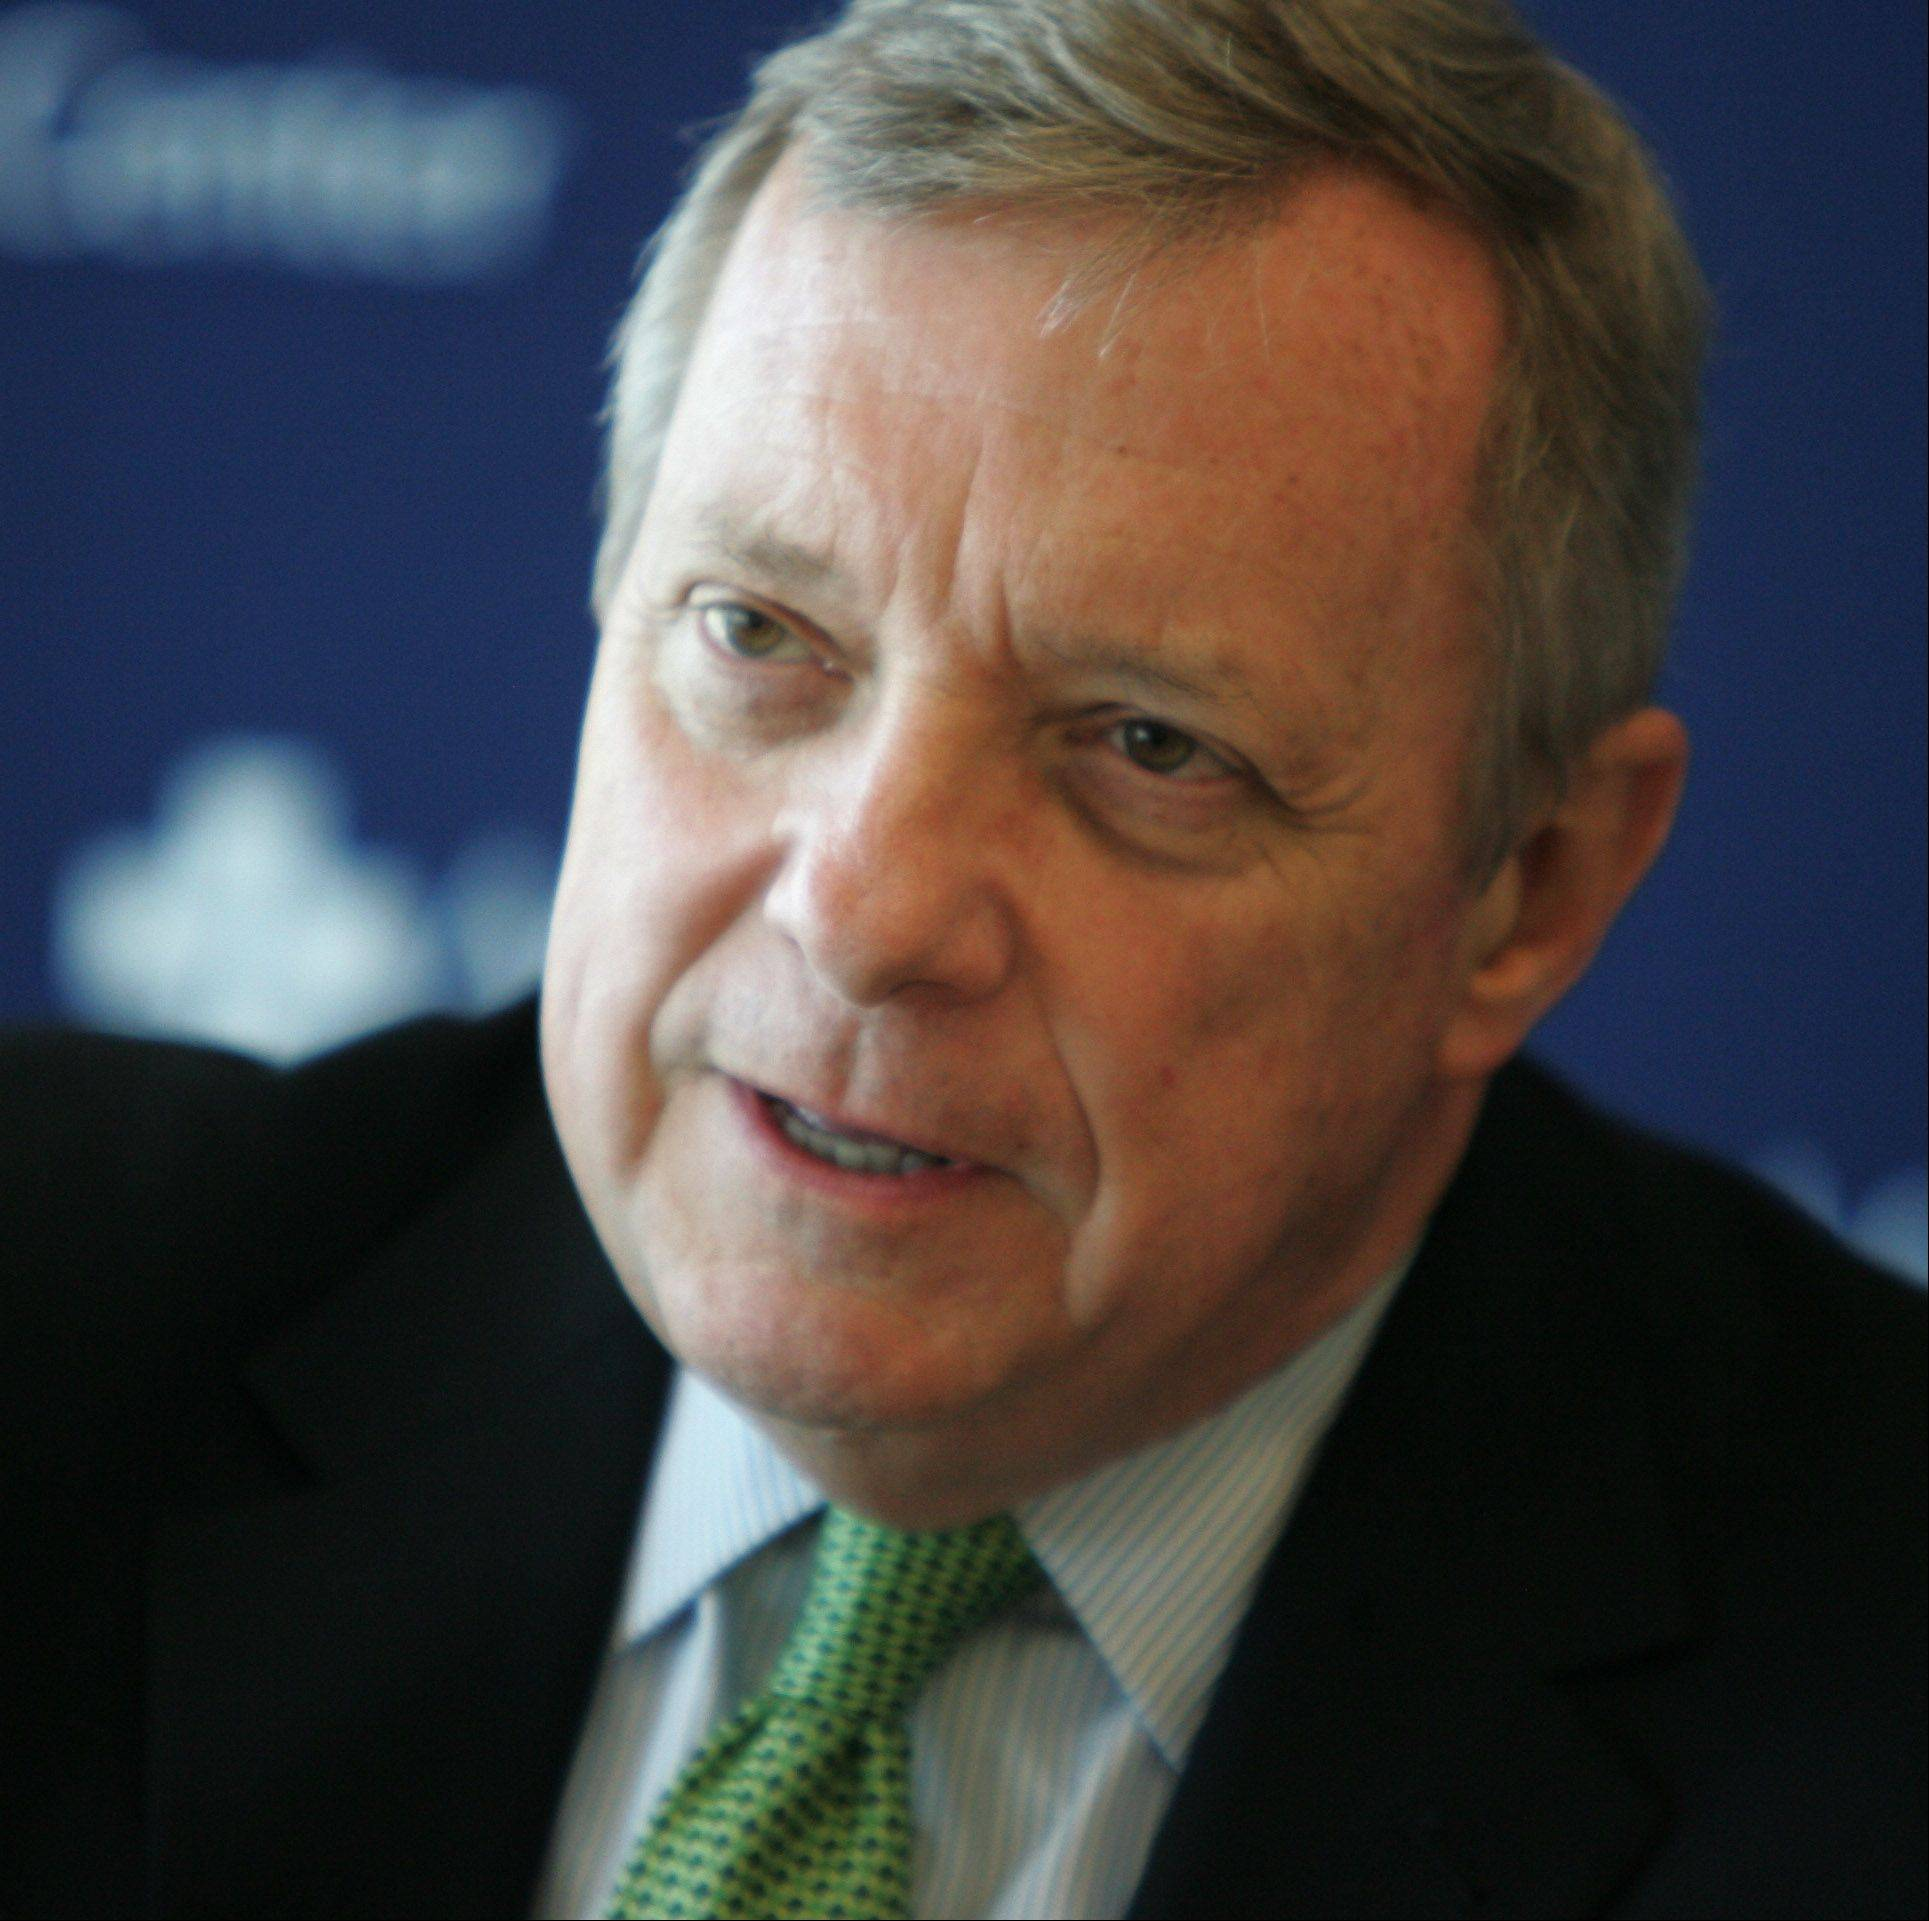 Sen. Dick Durbin of Illinois said of the U.S. policy governing drone use is �really unfolding. Most of this has not been disclosed.�